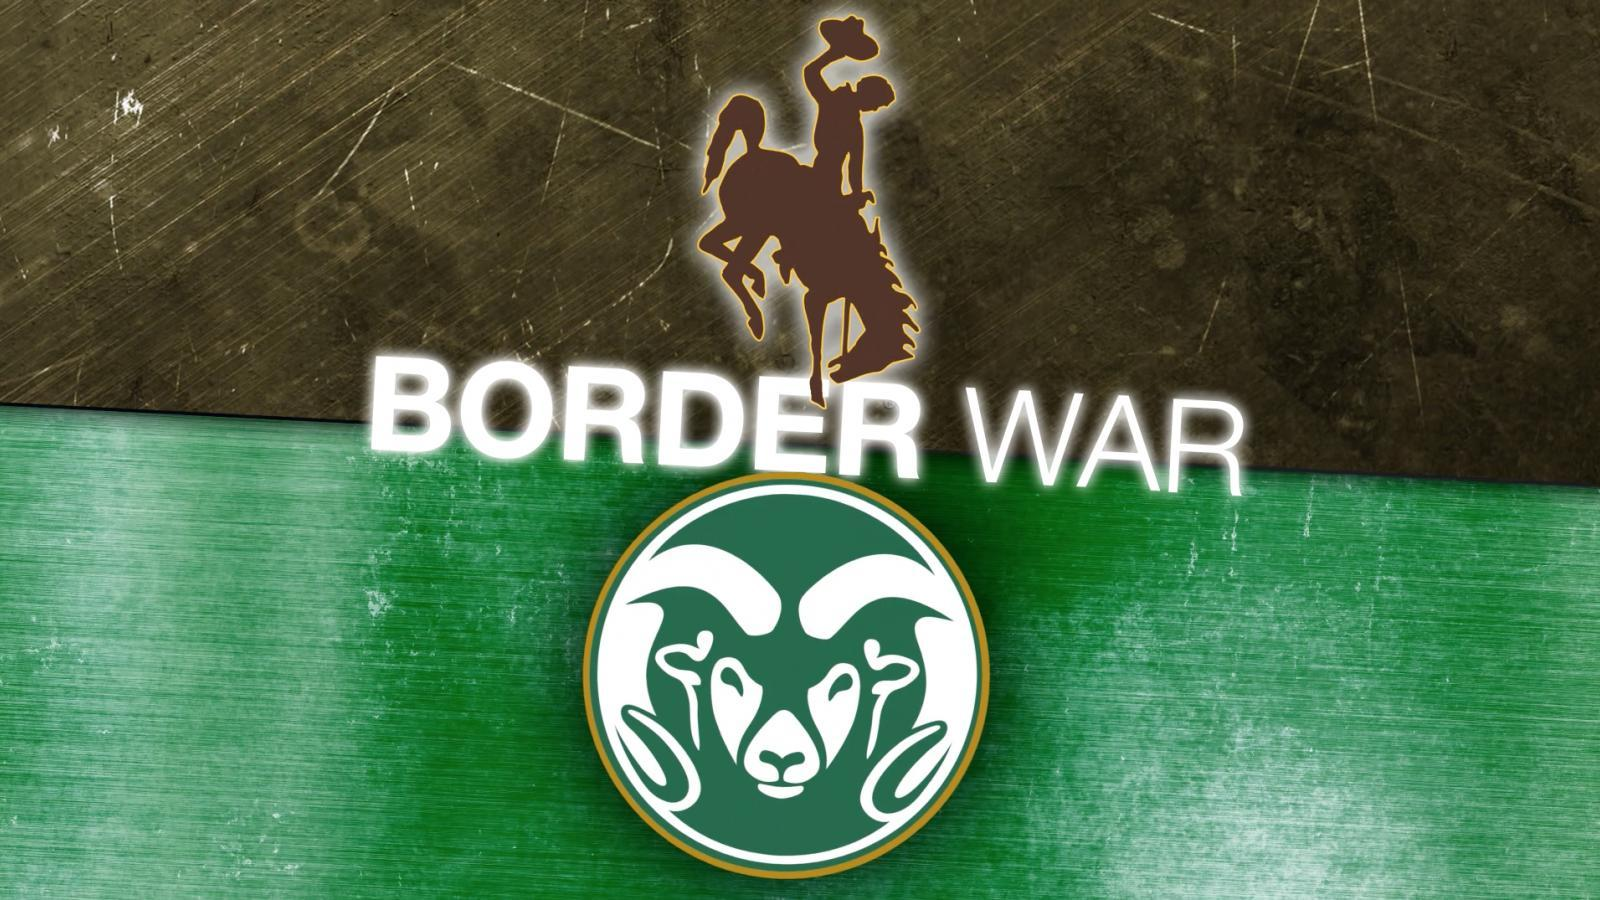 Colorado State vs. Wyoming State border war